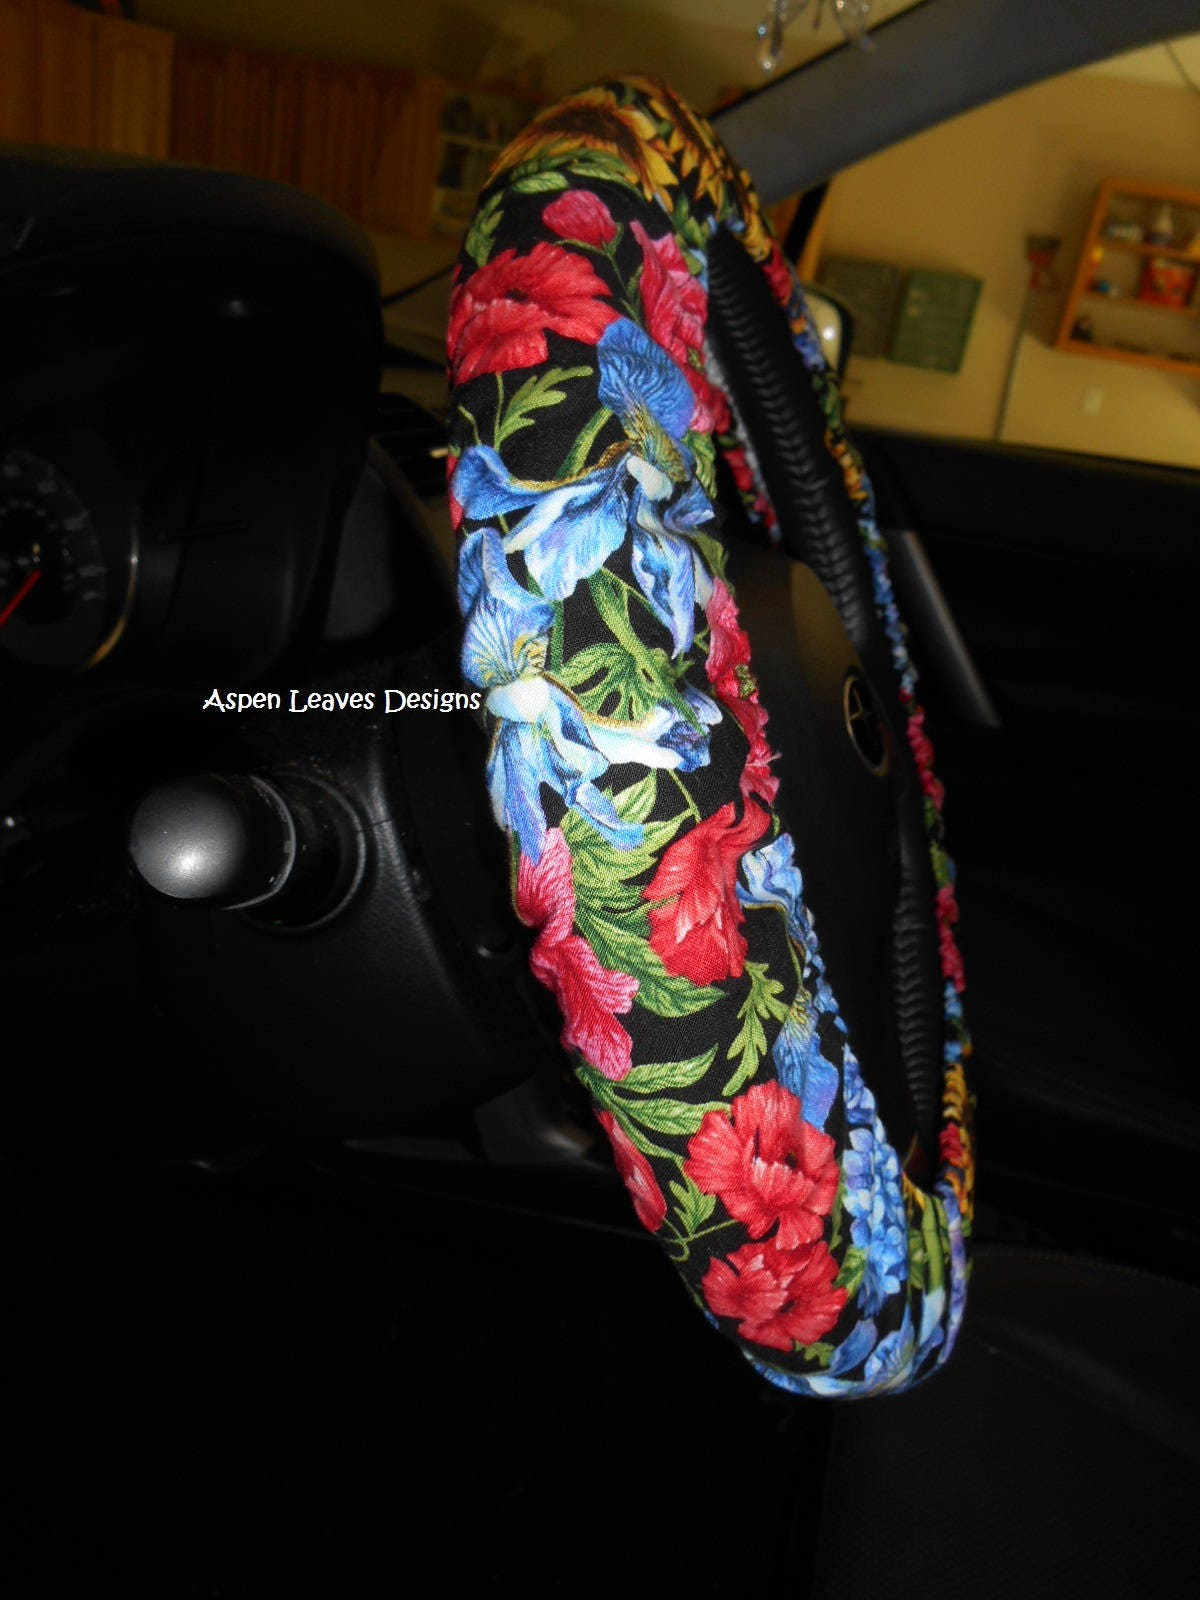 spring bouquet steering wheel cover iris pansies sunflowers seat belt cover and key fob. Black Bedroom Furniture Sets. Home Design Ideas